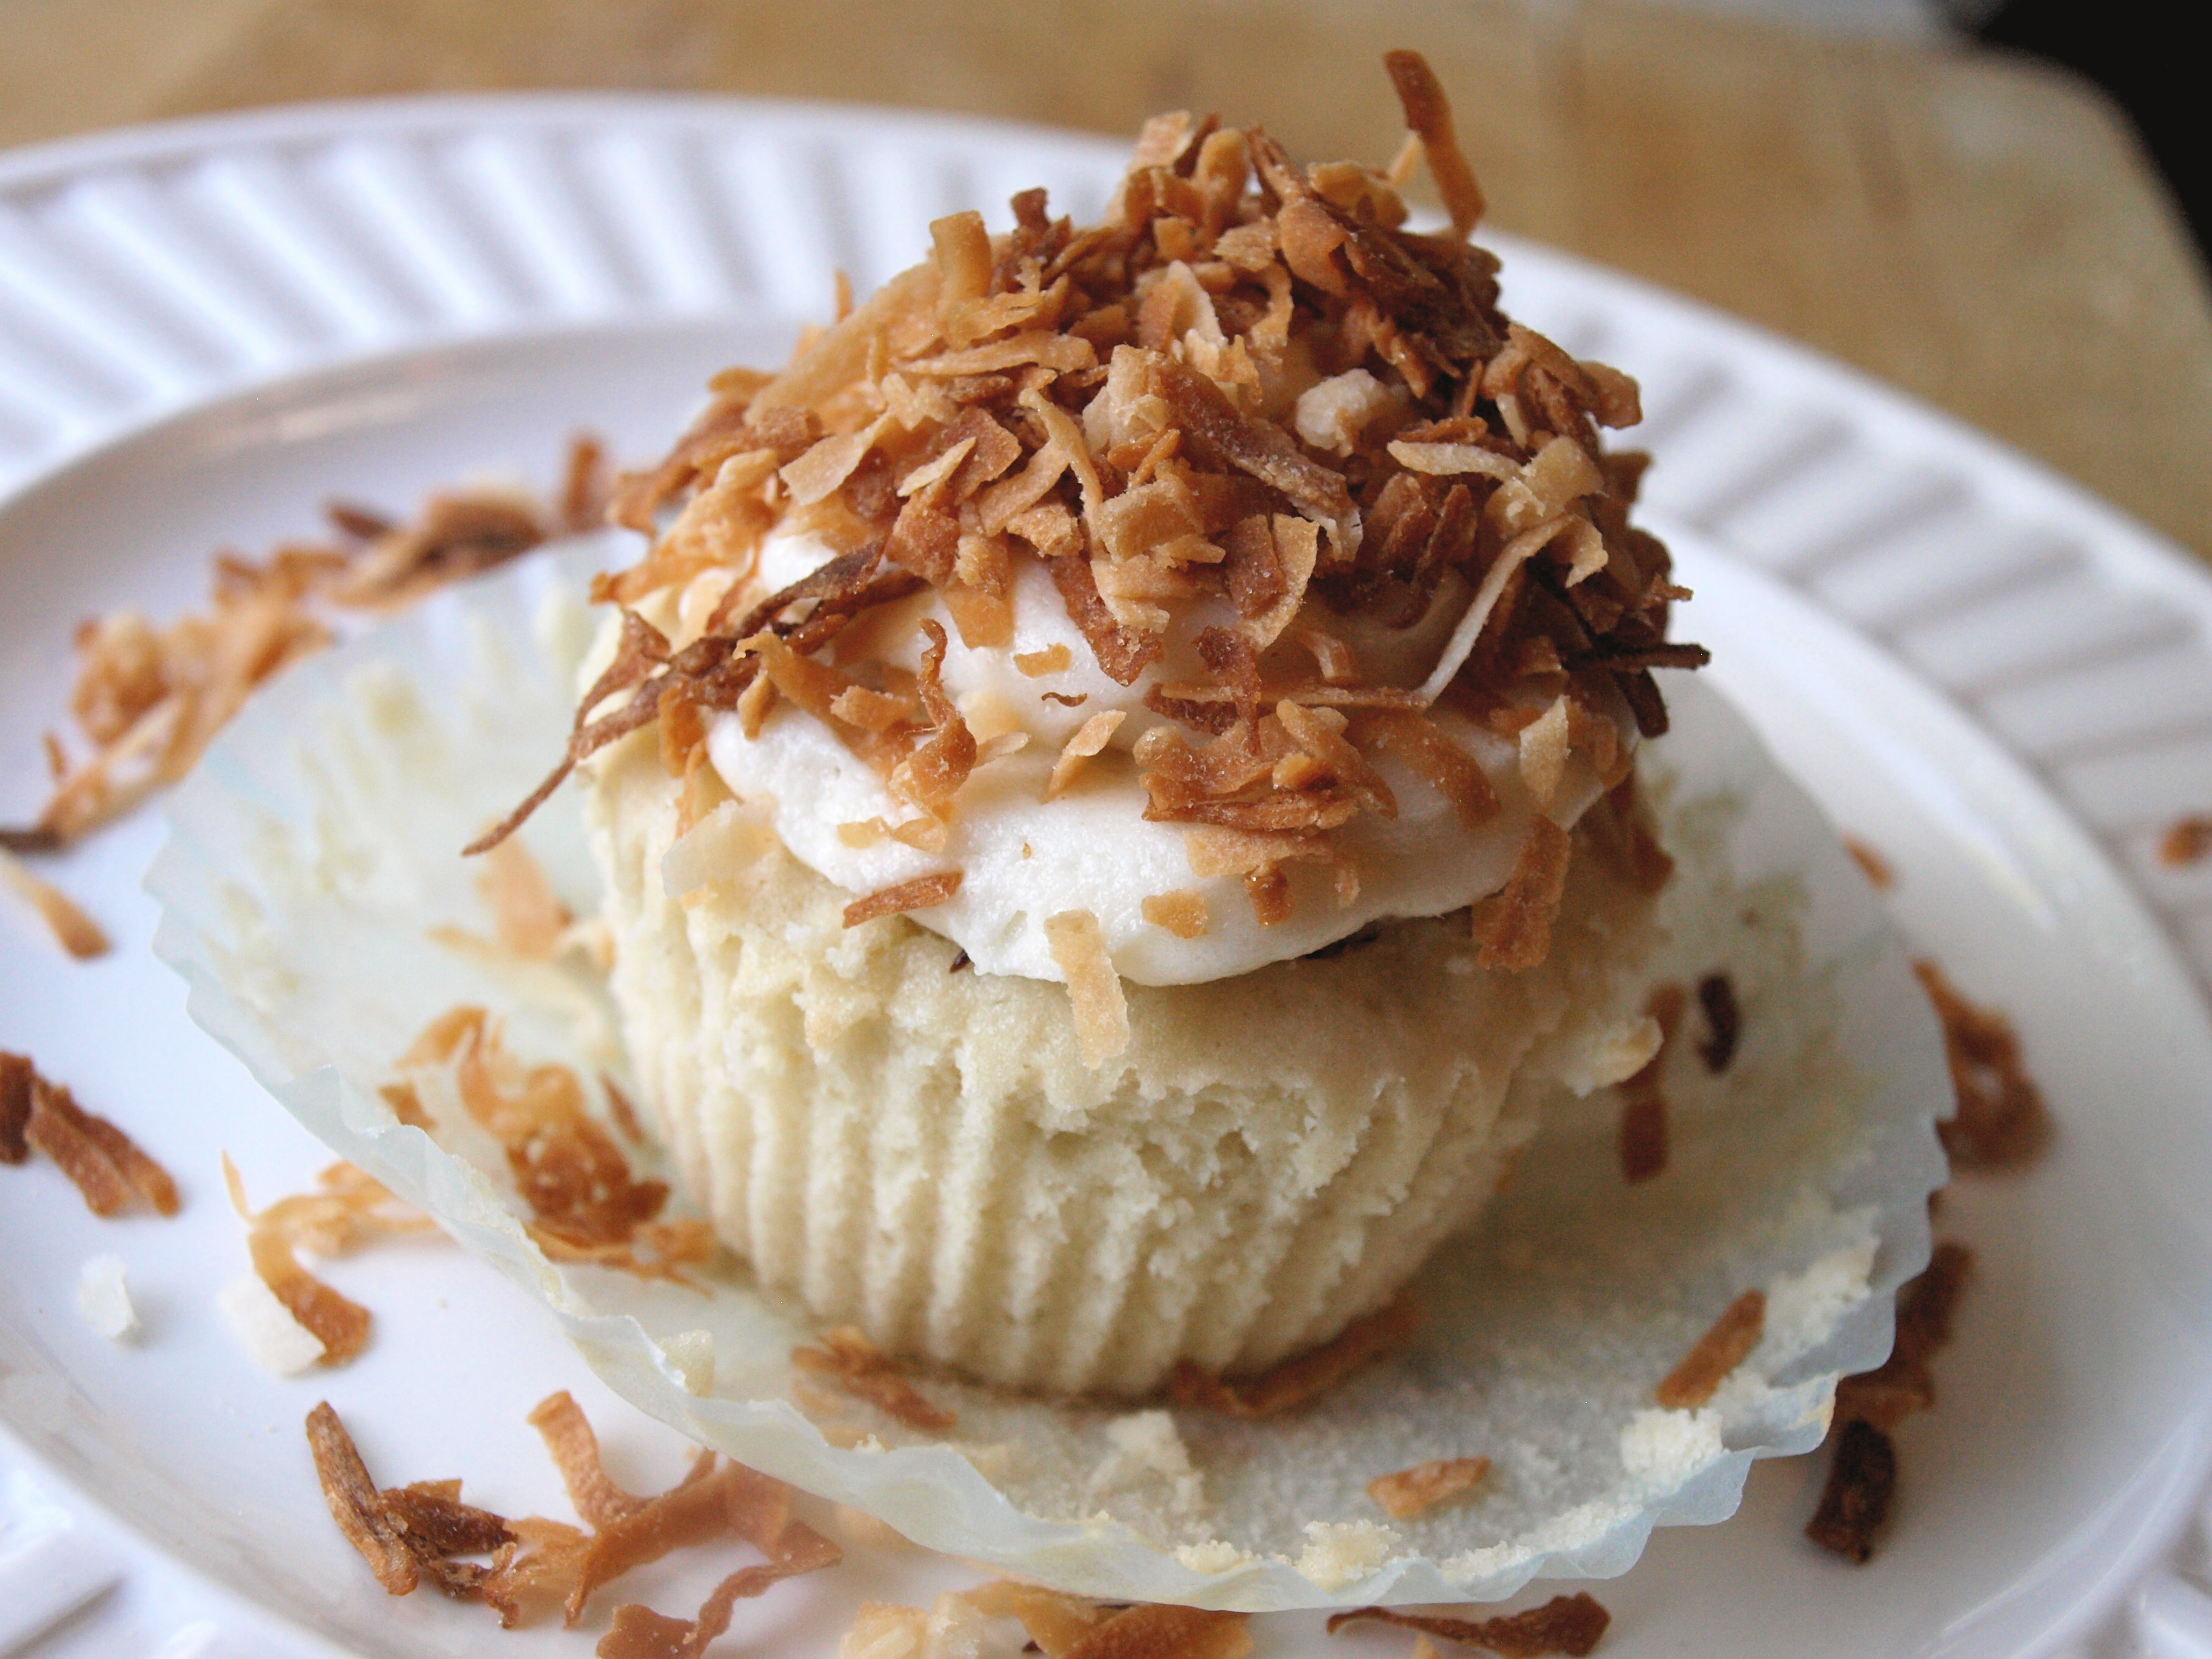 Coconut Cupcake with Chocolate Fudge Filling 3